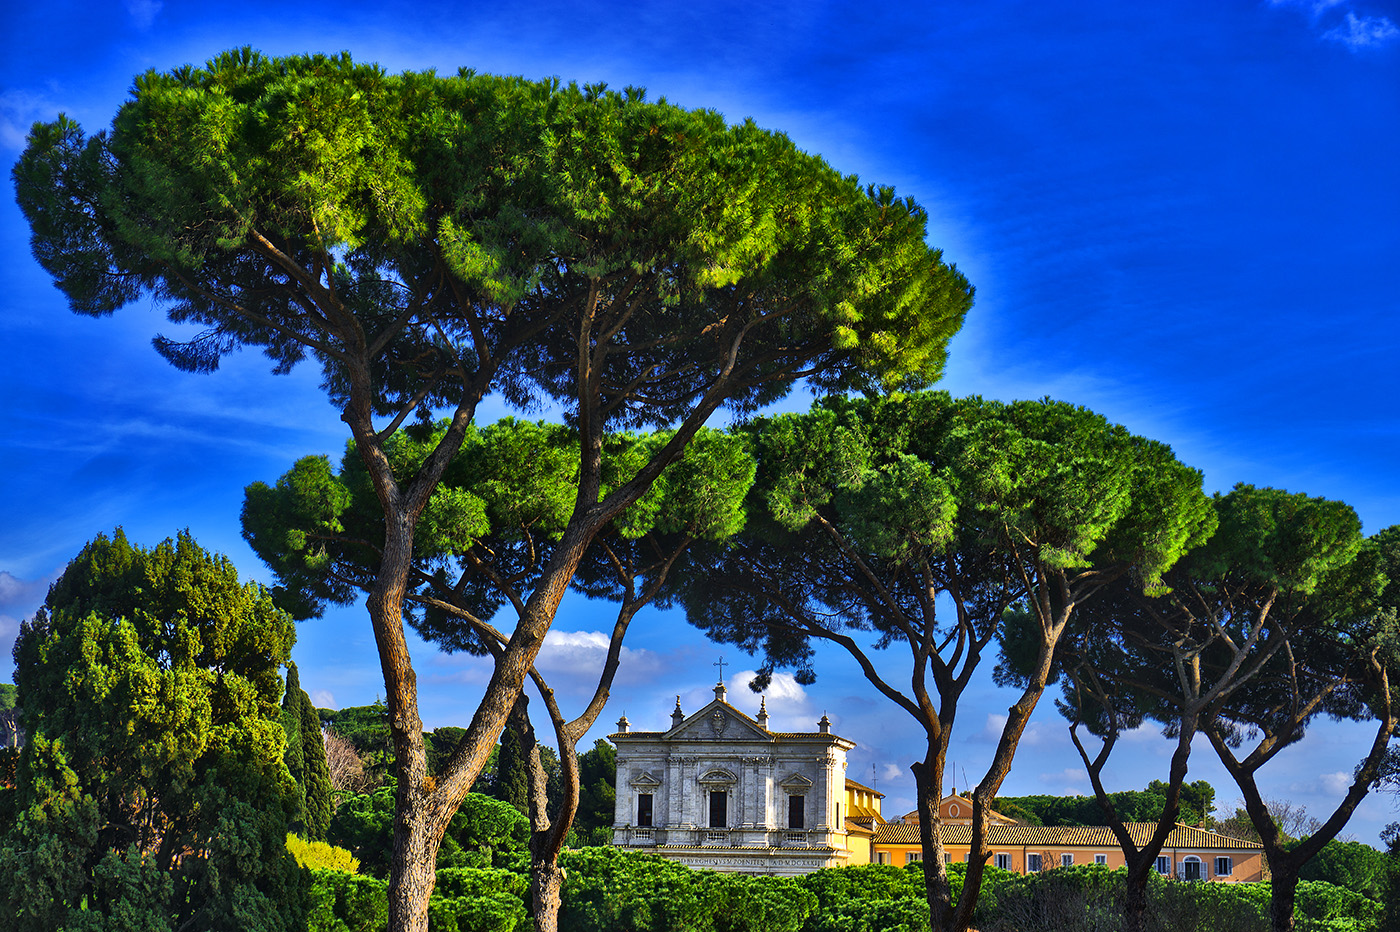 View of San Gregorio al Celio from Palatine Hill in Rome, Italy